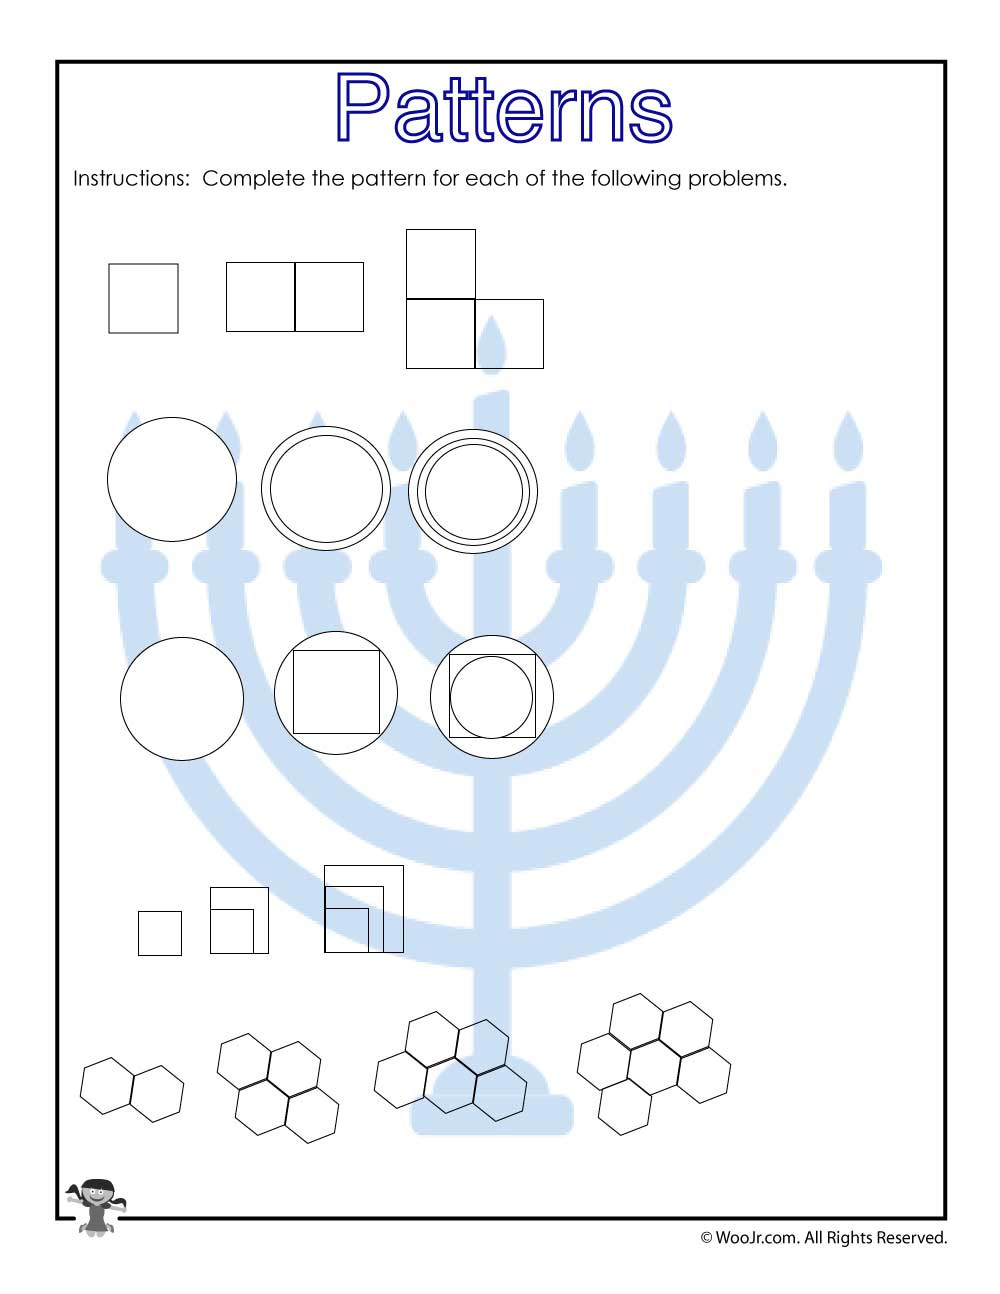 Predictions Worksheets 3rd Grade Visual Pattern Prediction Worksheet for 3rd Grade